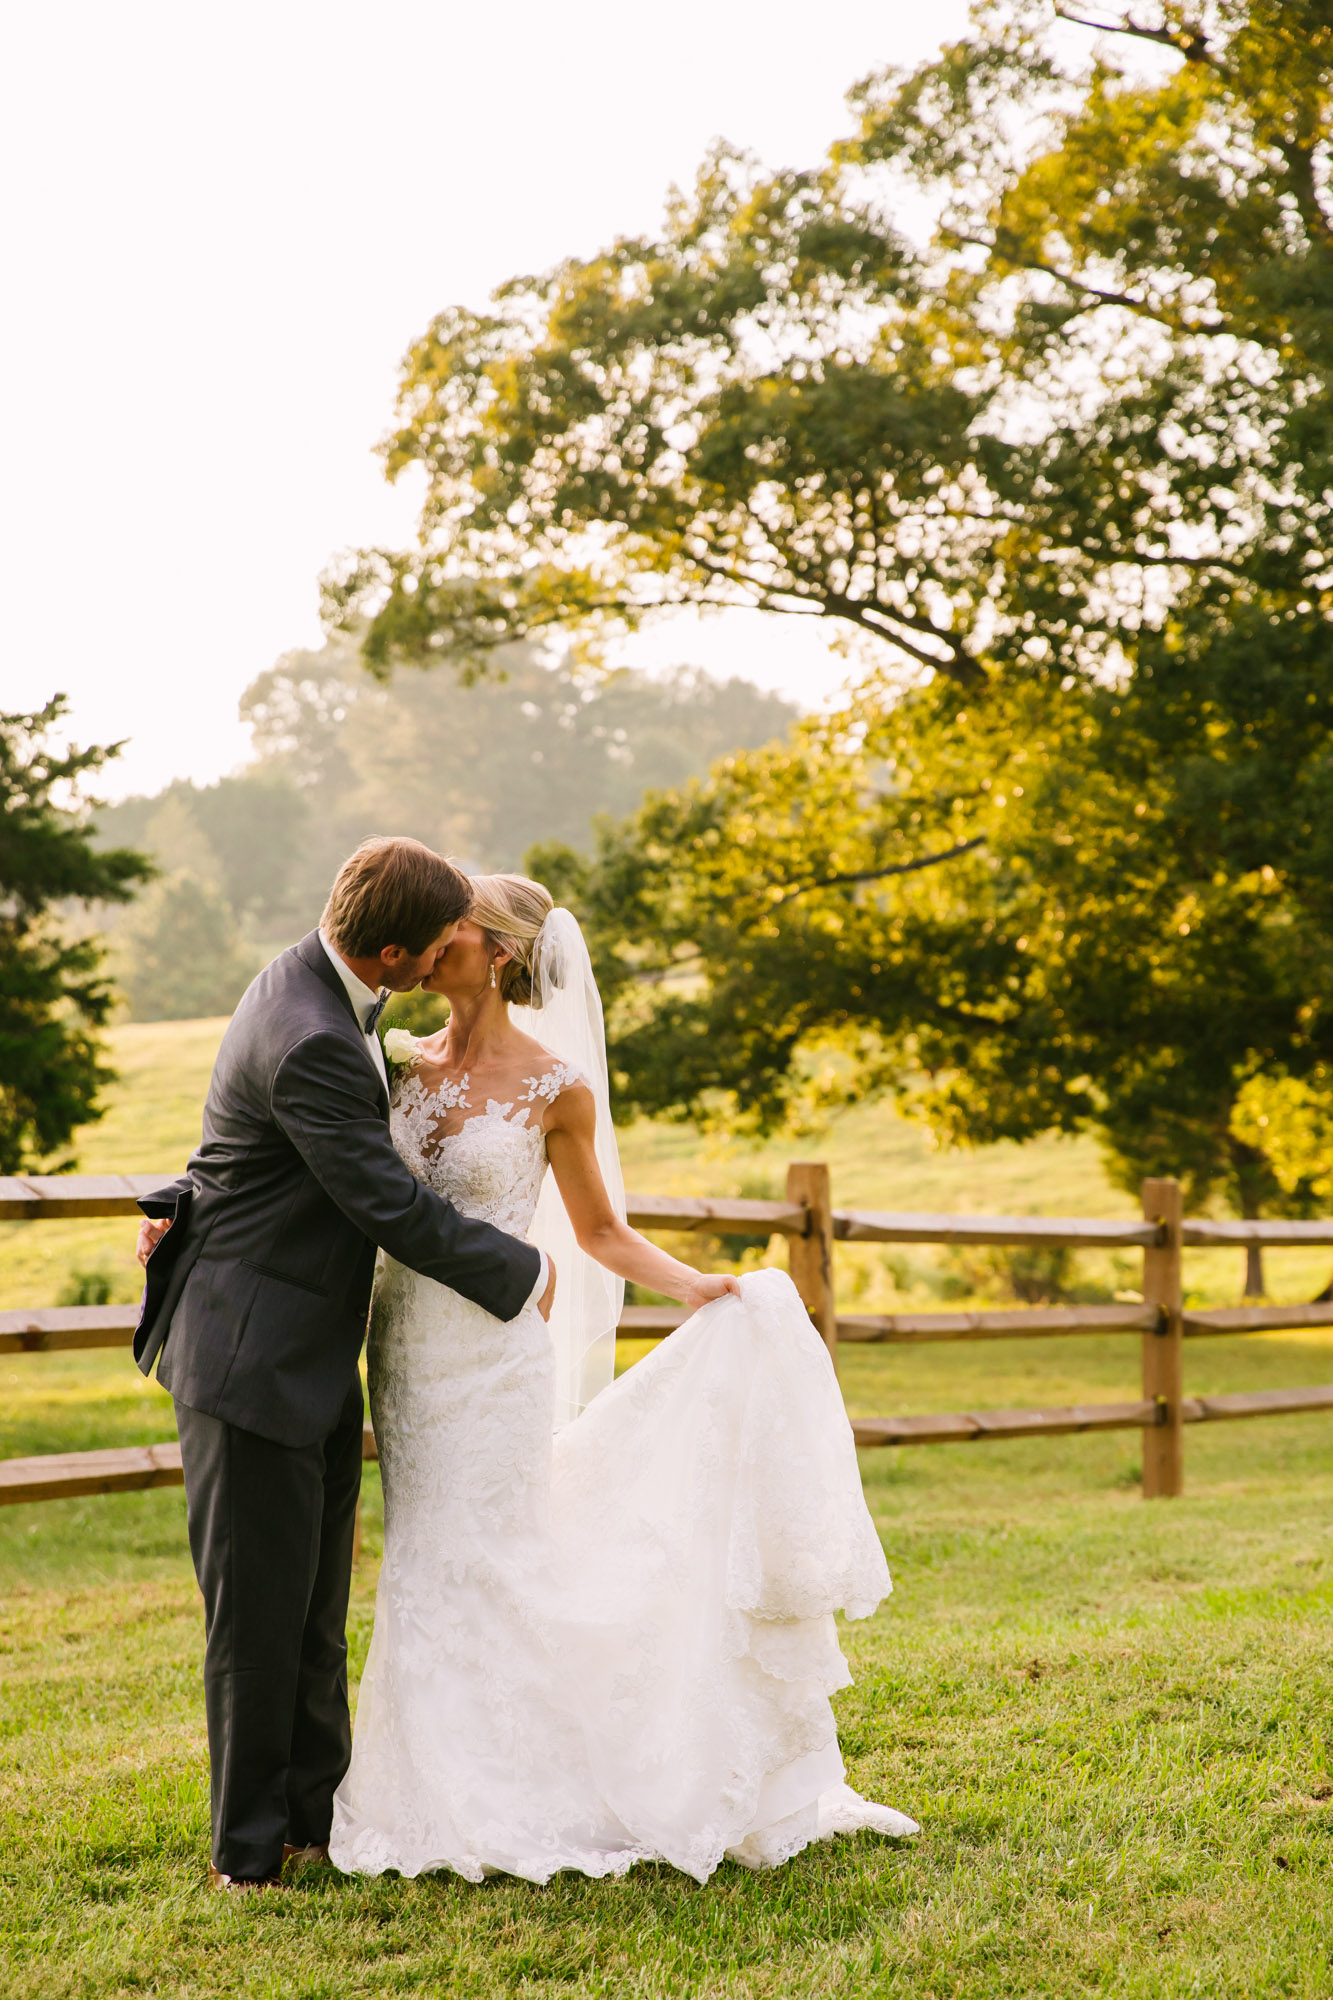 Waynesville, NC Wedding Photography | Bride and Groom Kissing on the Farm